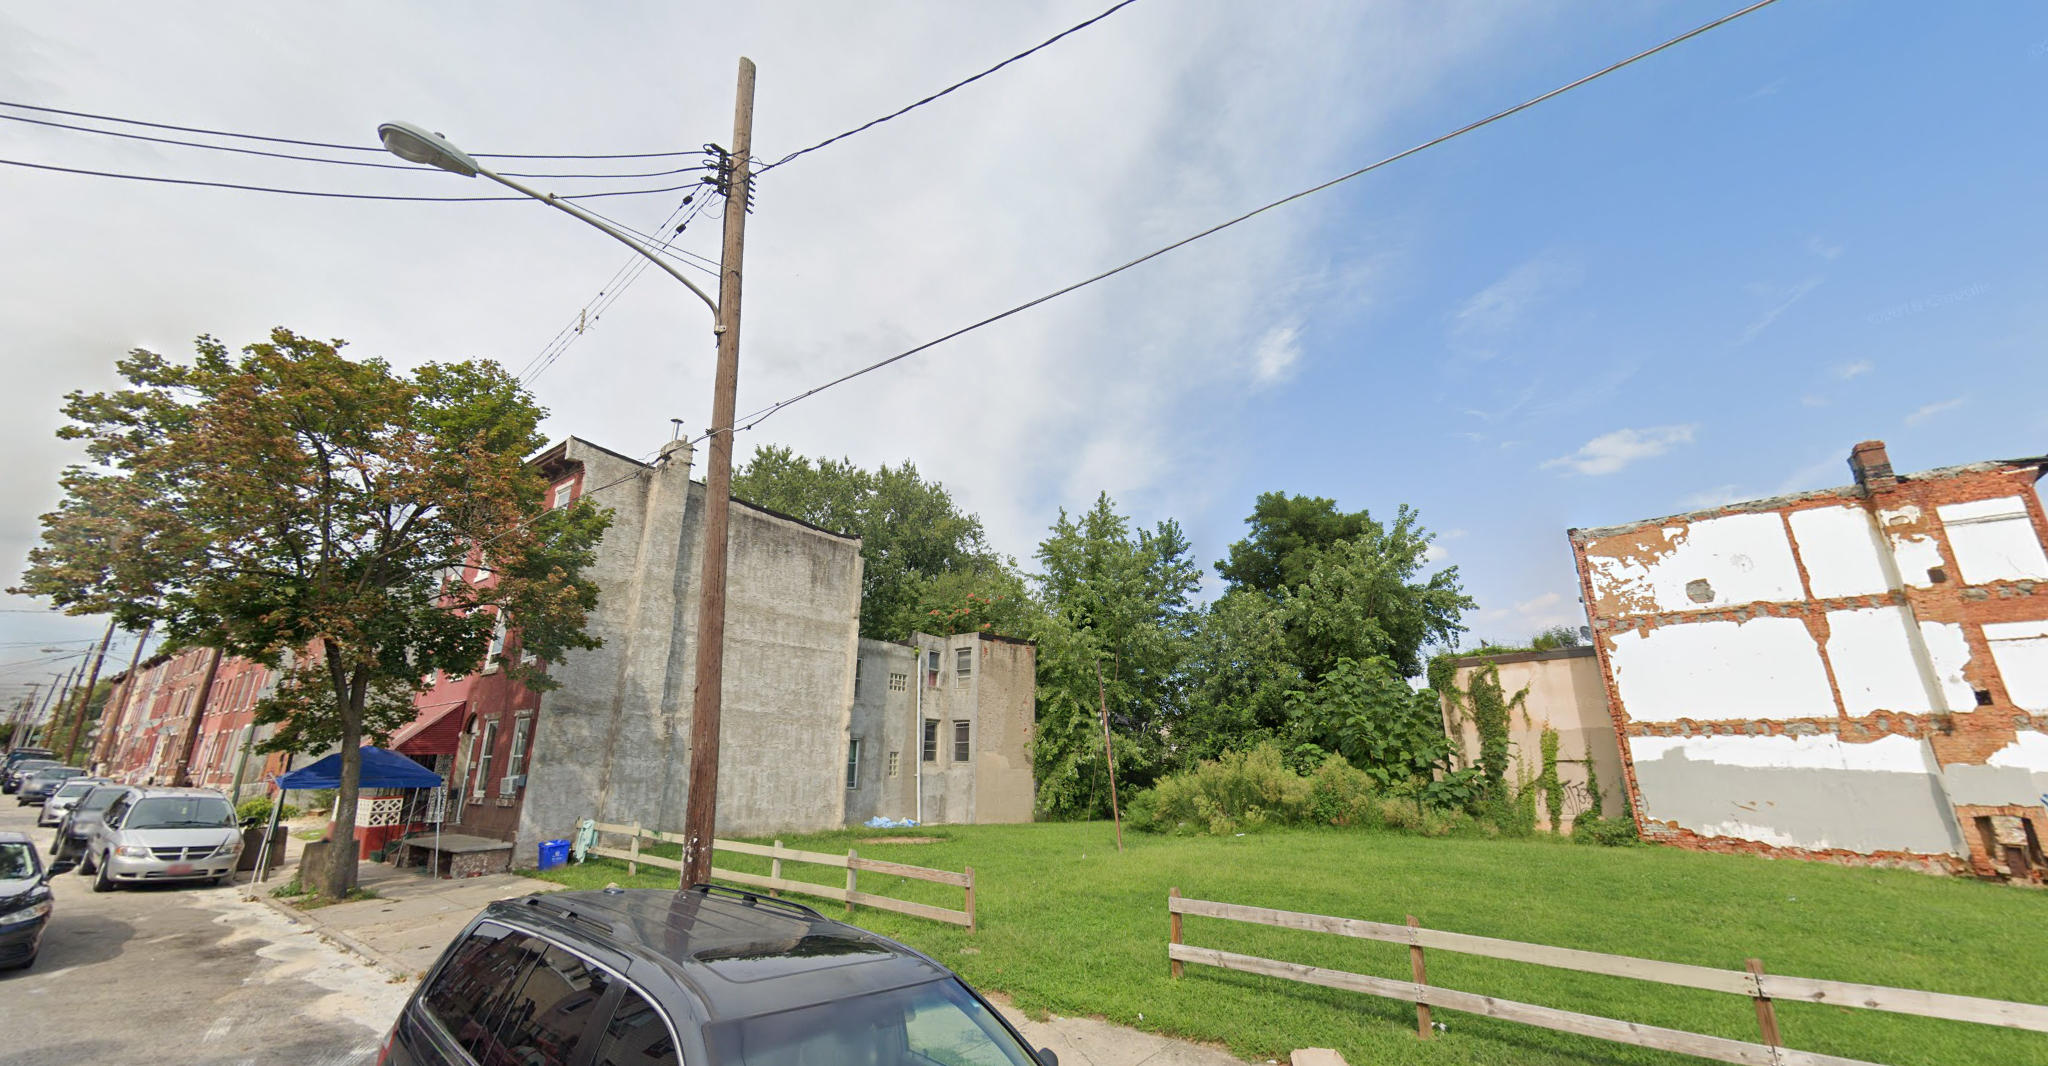 Current view of 2501 North 7th Street. Credit: Google.